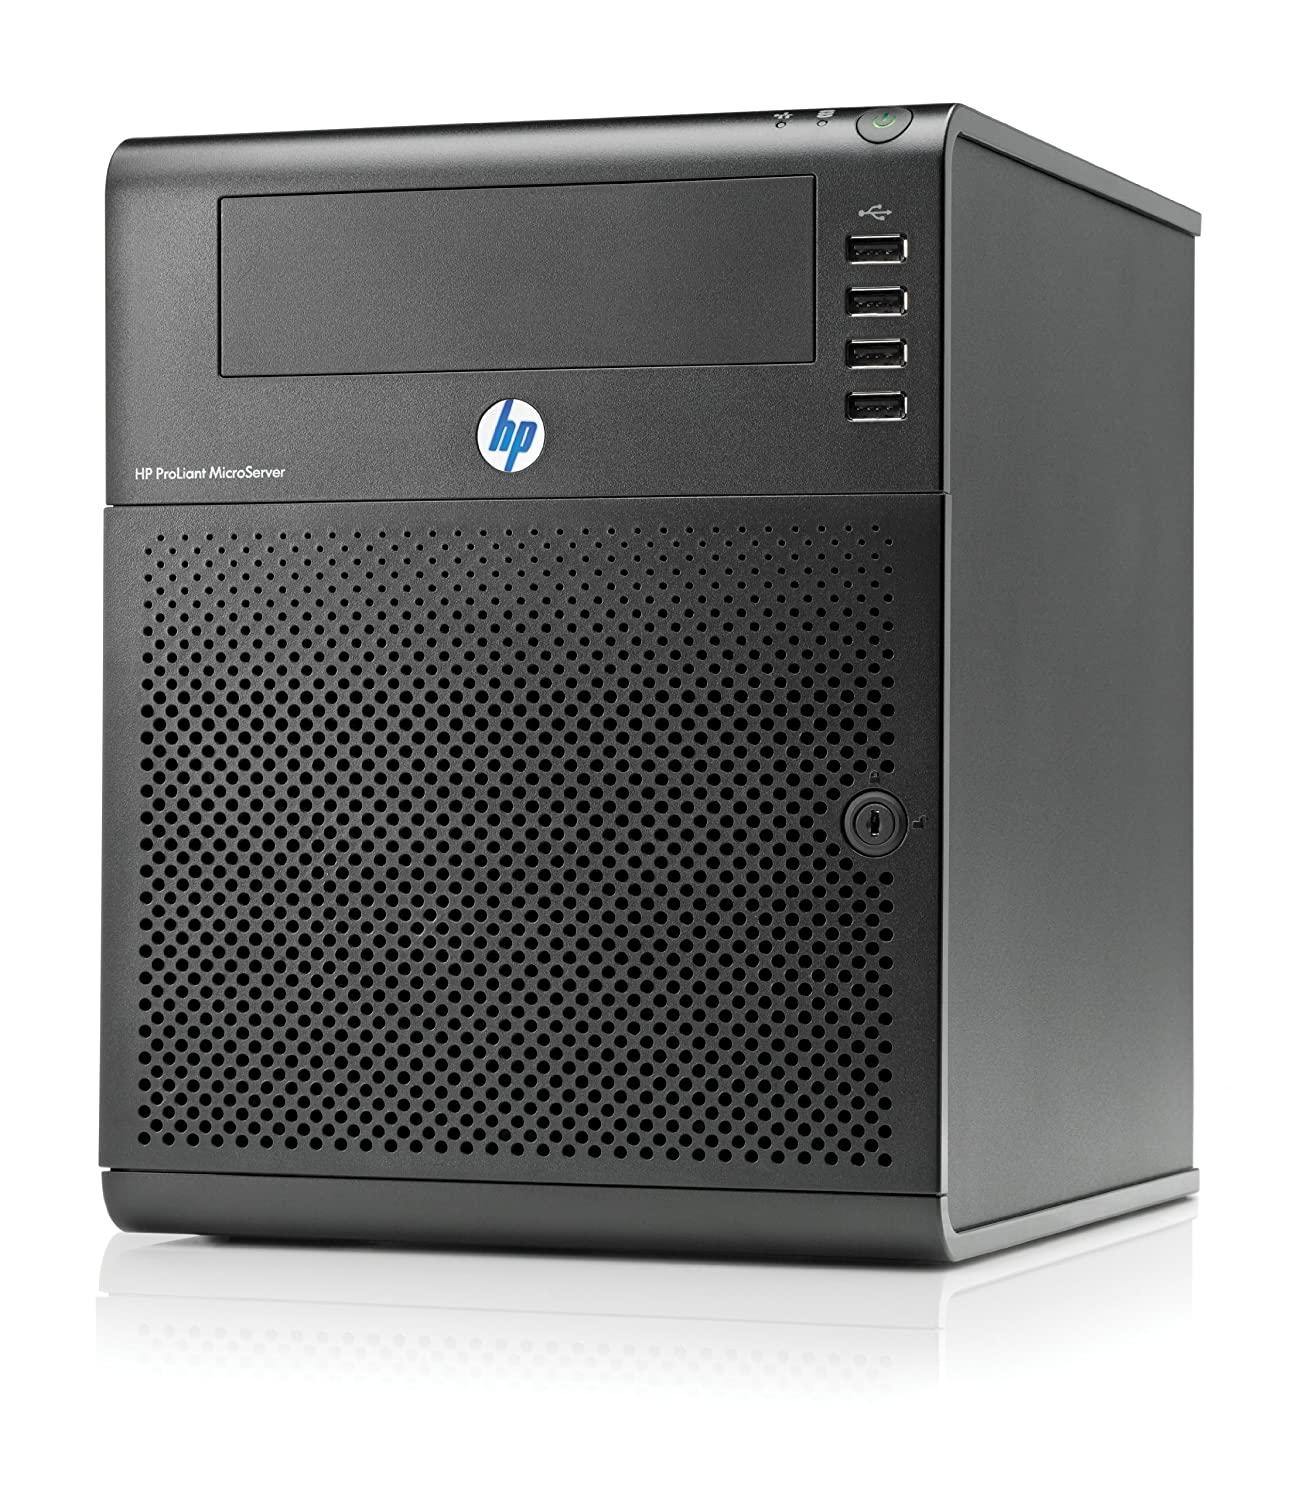 HP ProLiant G7 MicroServer Turion II Neo (N54L) 2 2GHz 2GB-U 250GB SATA (On  Board Graphics) with 150W Power Supply